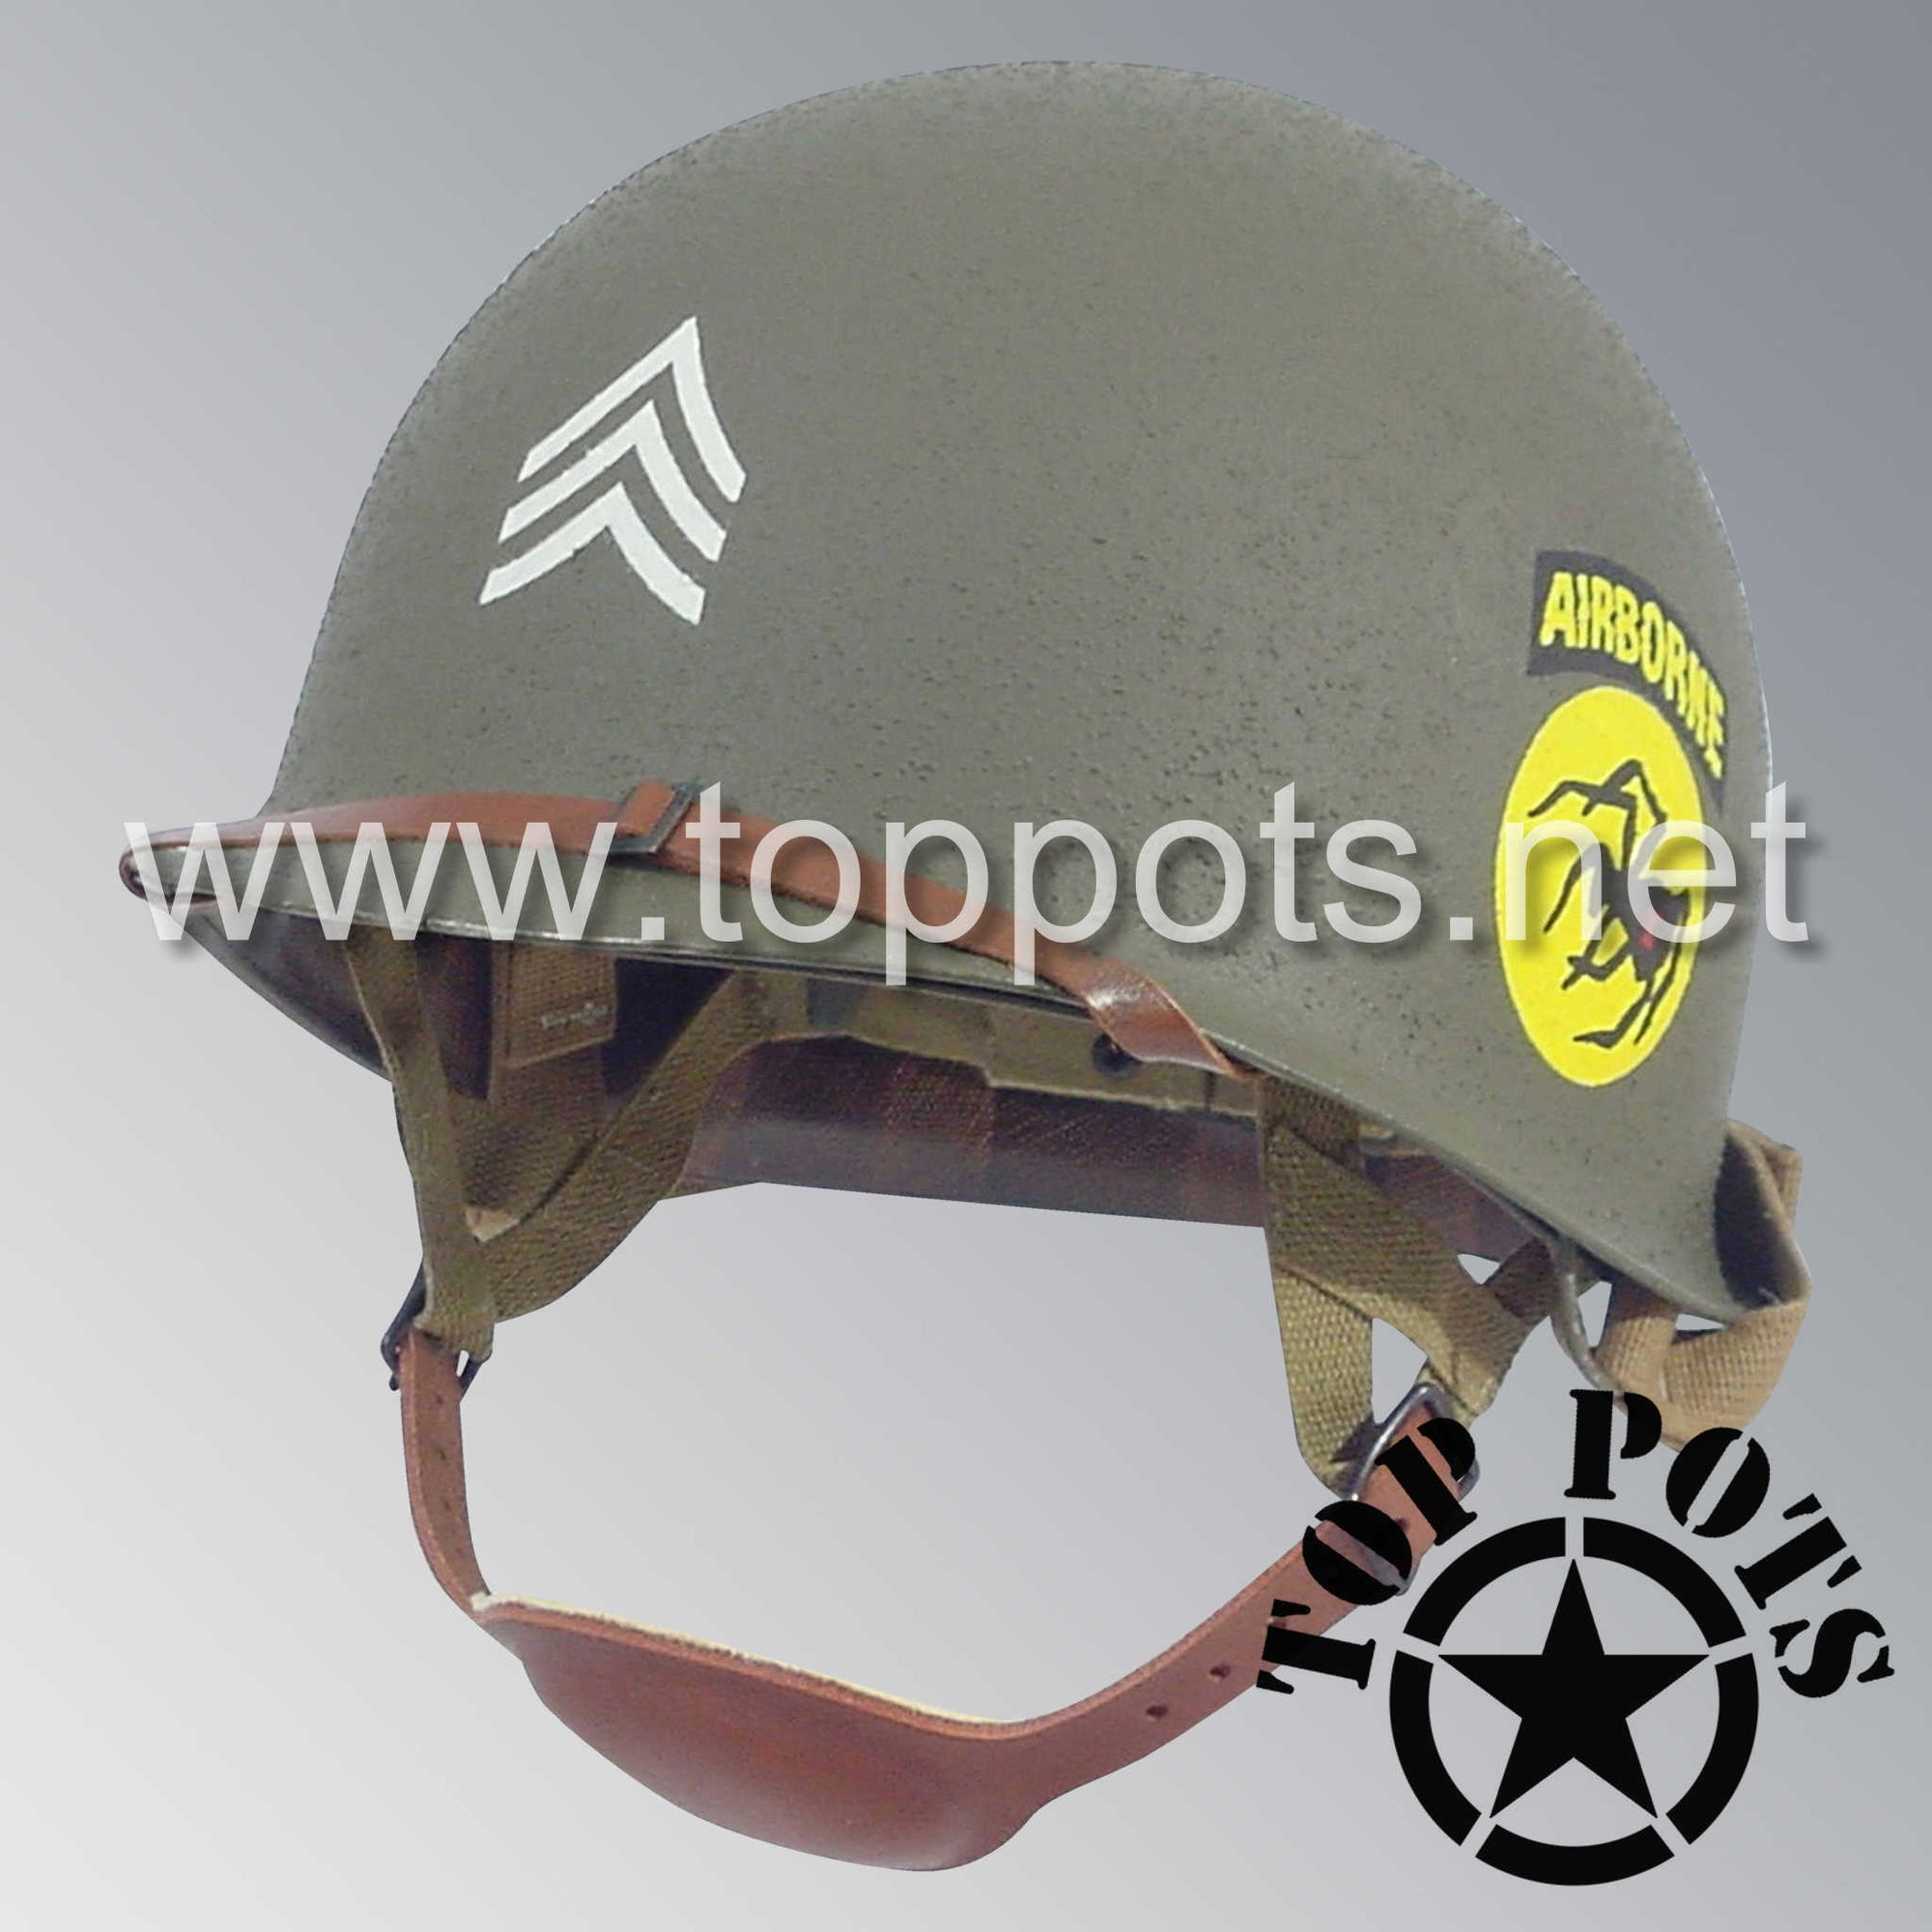 Image 1 of WWII US Army Restored Original M2 Paratrooper Airborne Helmet D Bale Shell and Liner with 135th Airborne Decoy Division NCO Emblem